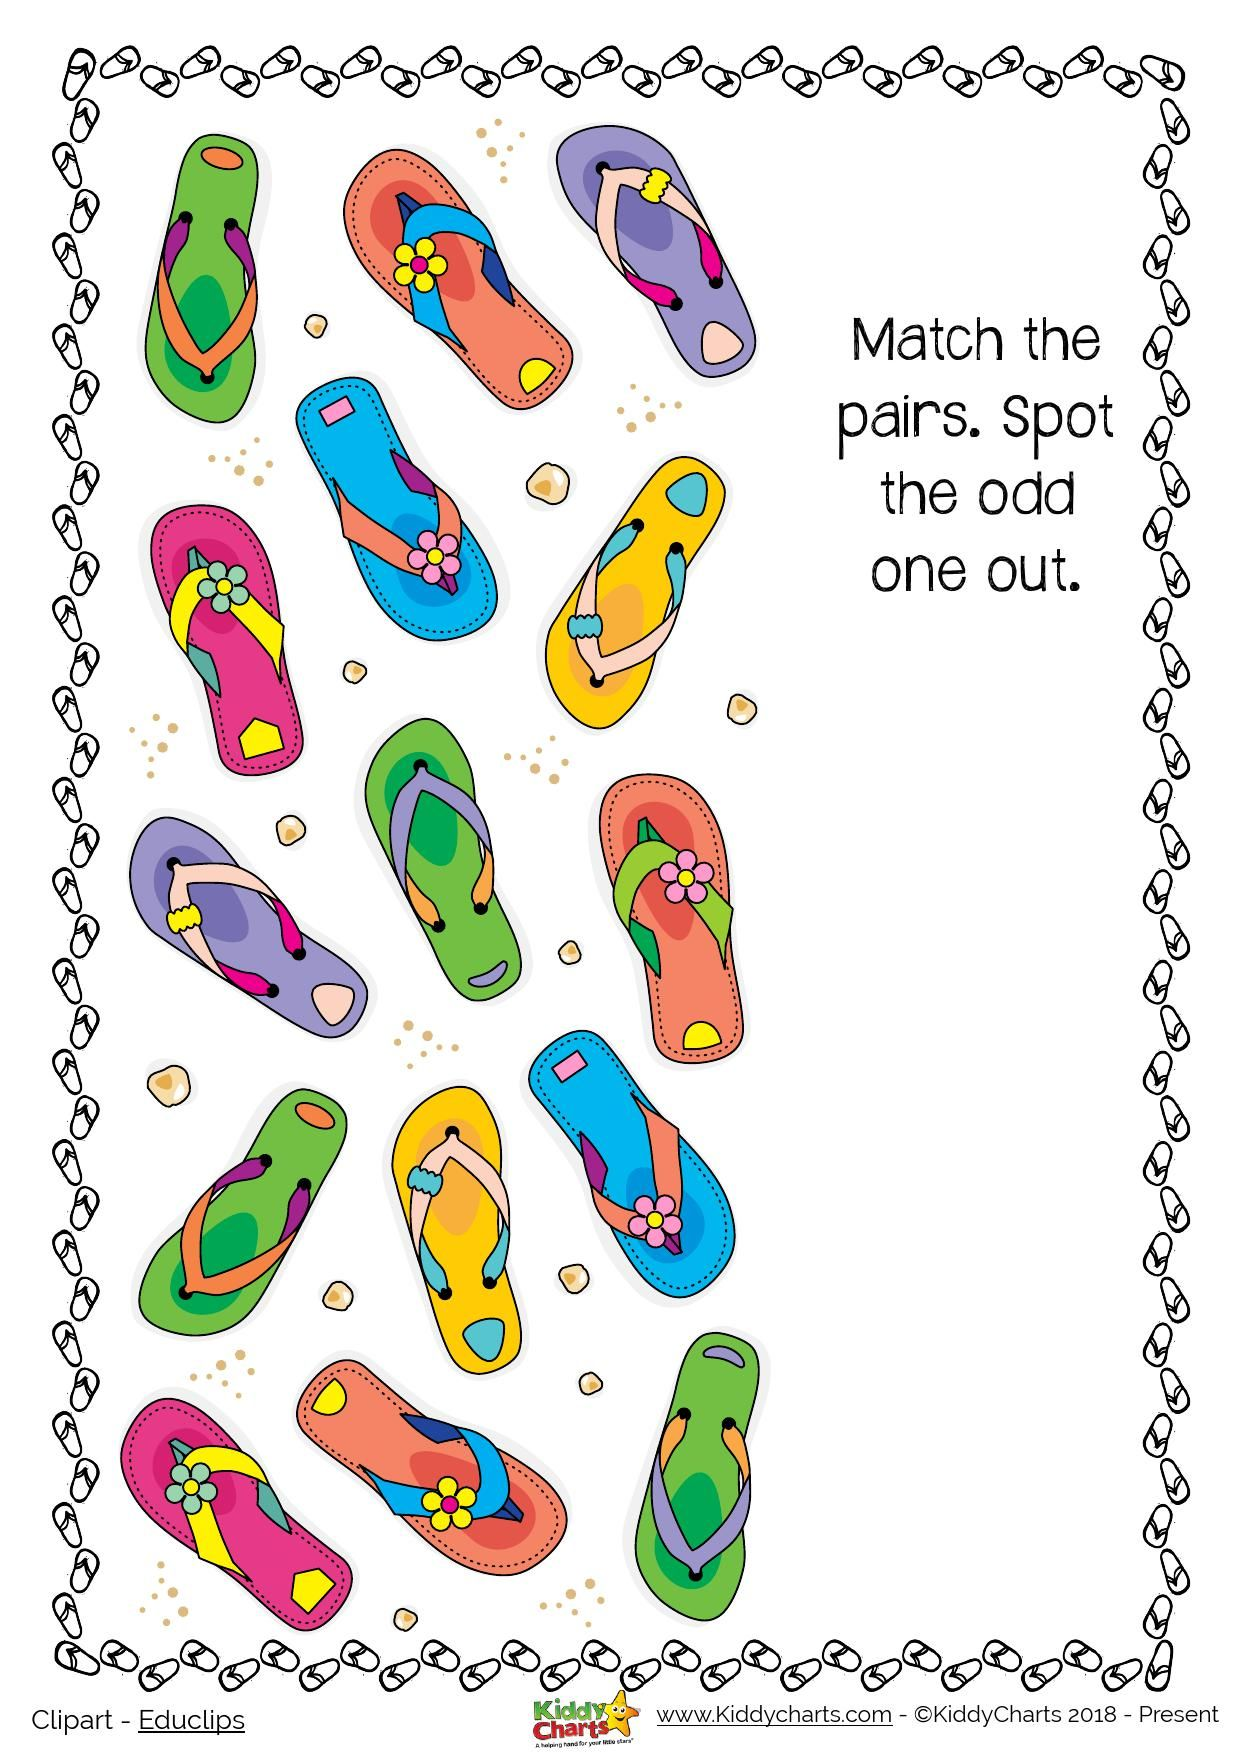 Day 5 Summer Odd One Out Printable Activity